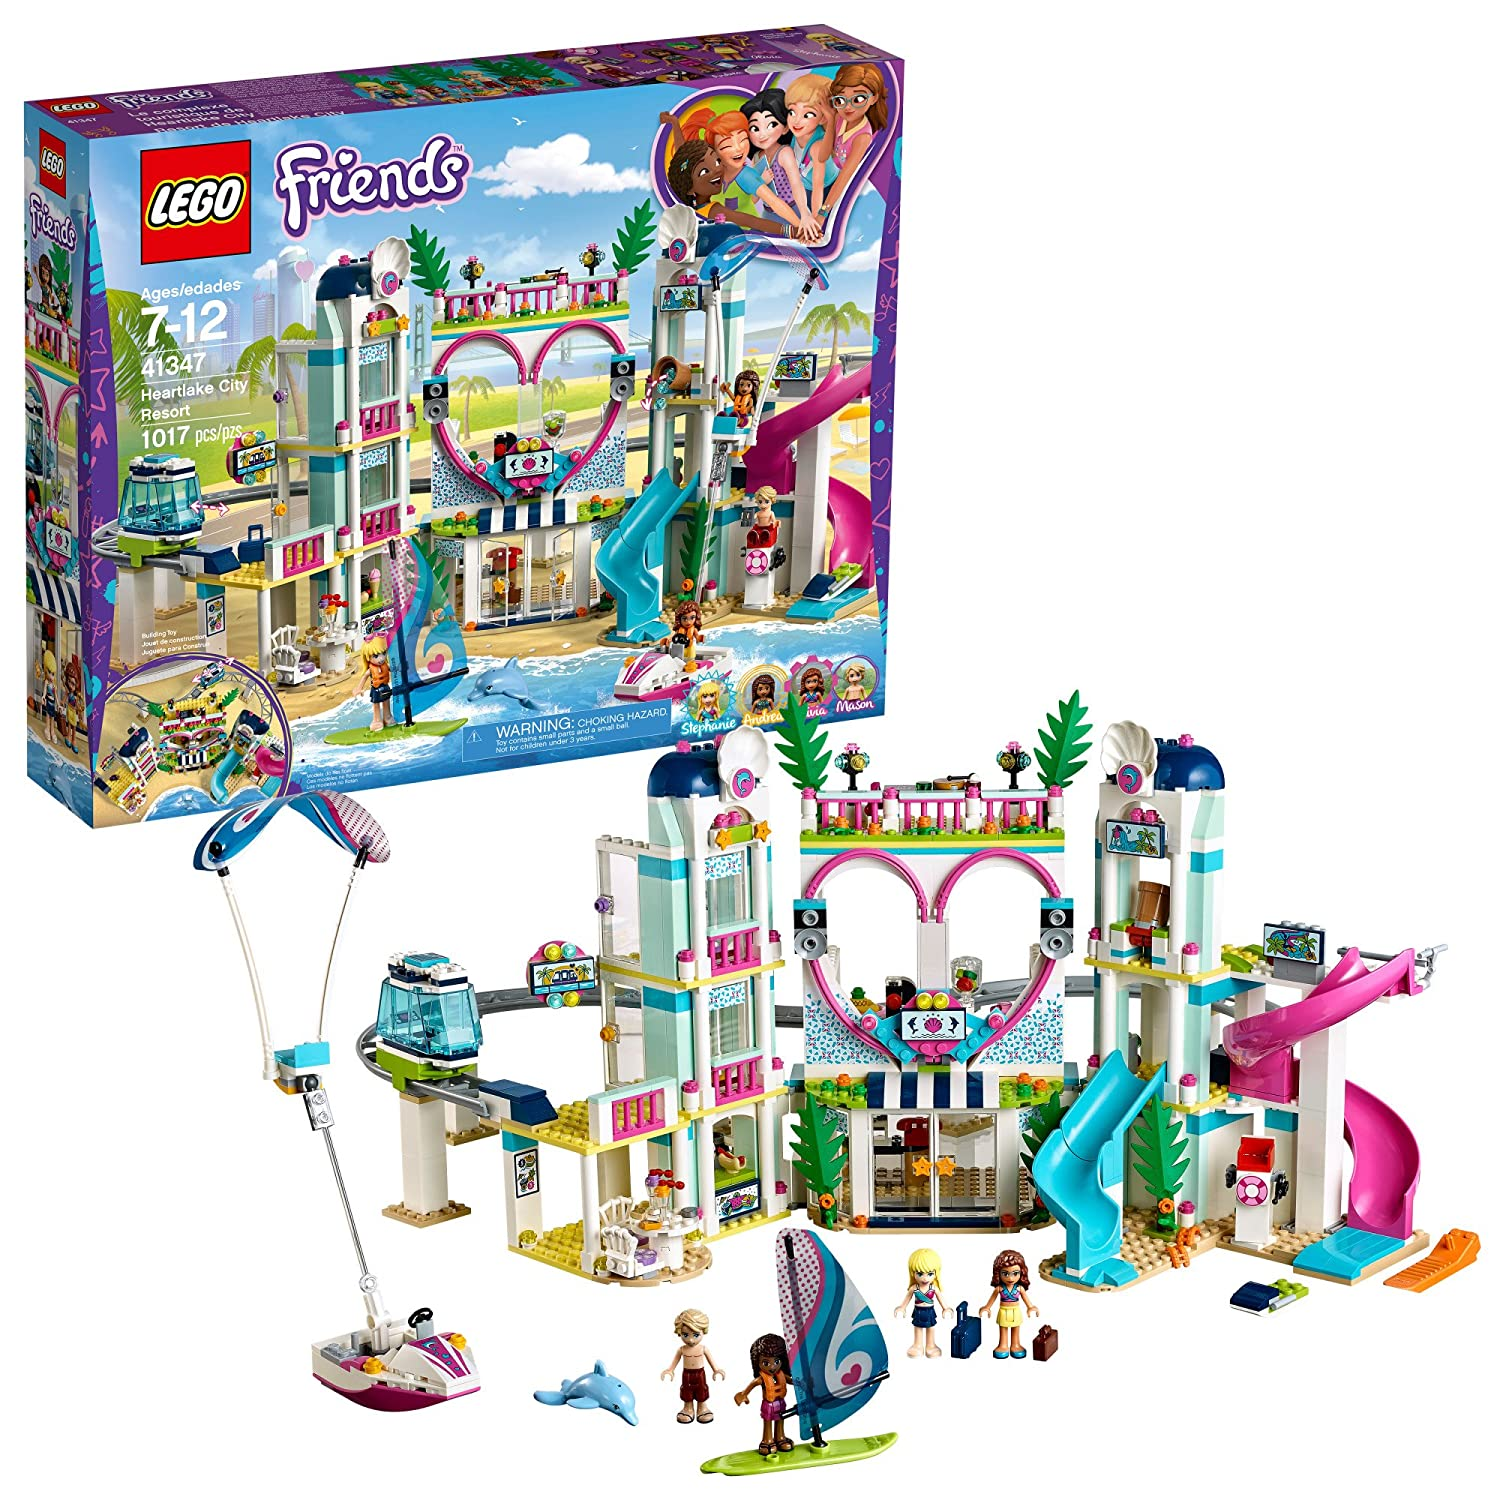 LEGO Friends Heartlake City Resort 41347 Top Hotel Building Blocks Kit for Kids Aged 7-12, Popular and Fun Toy Set for Girls (1017 Piece)